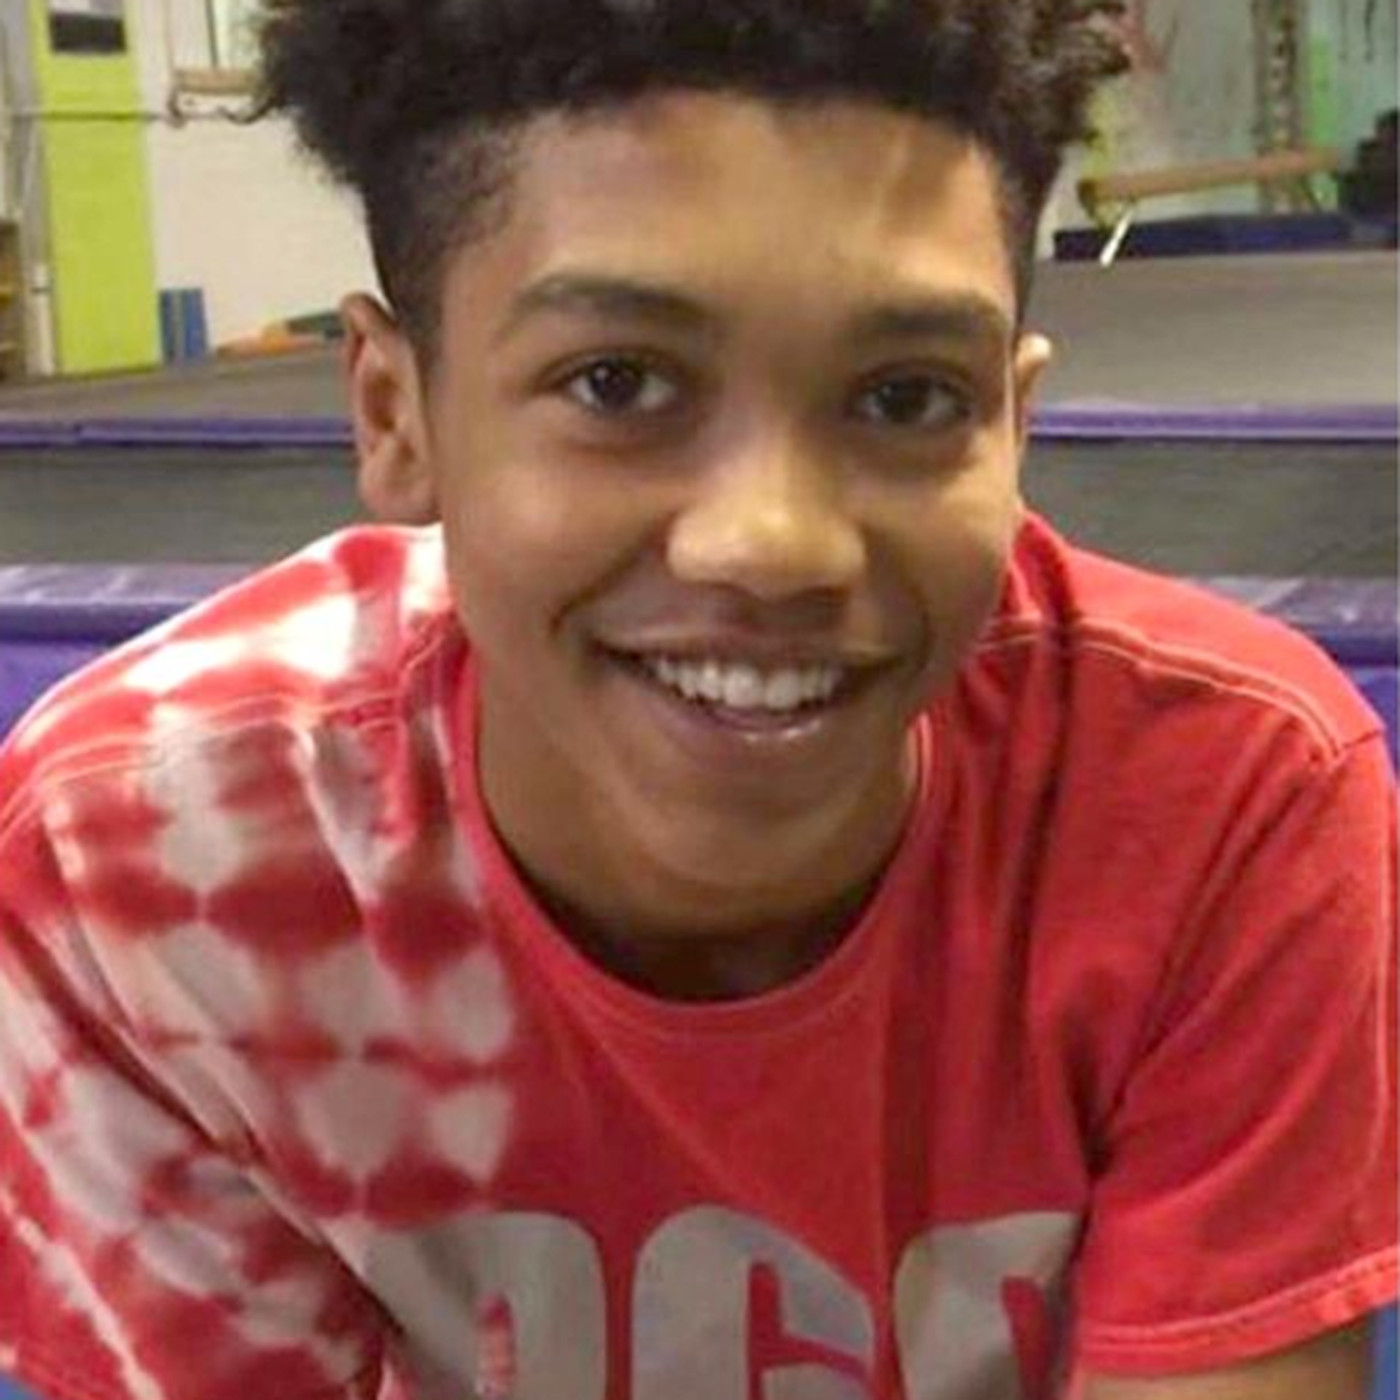 Lawyer: No Apparent Justification For Fatal Shooting Of Teen Antwon Rose